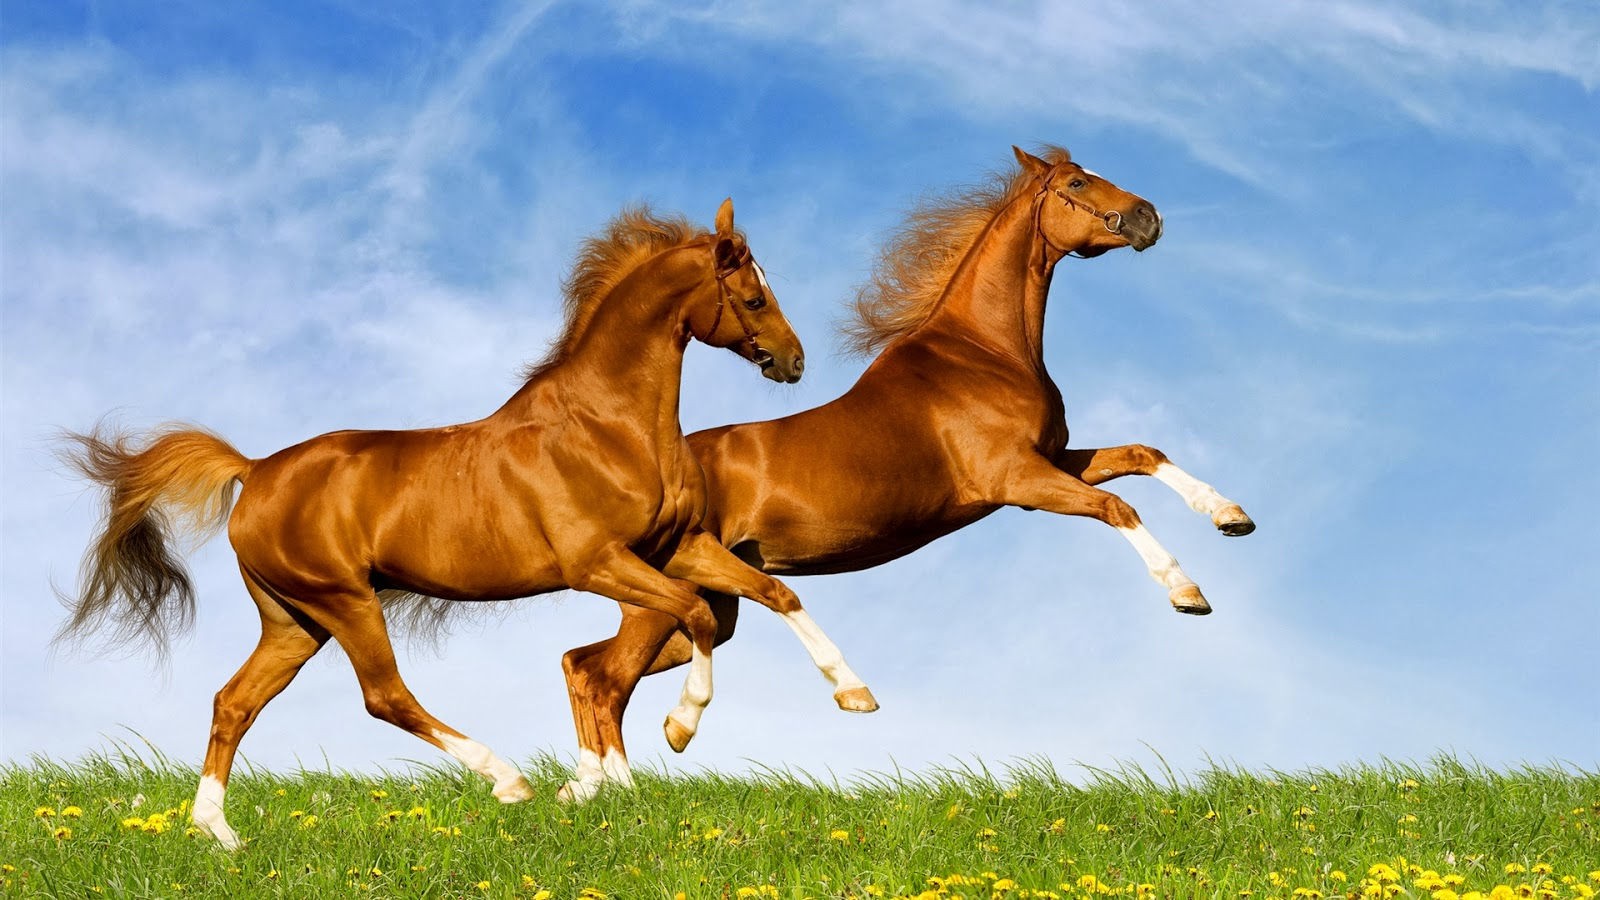 wallpapers desktop horse and make this HD wallpapers desktop 1600x900